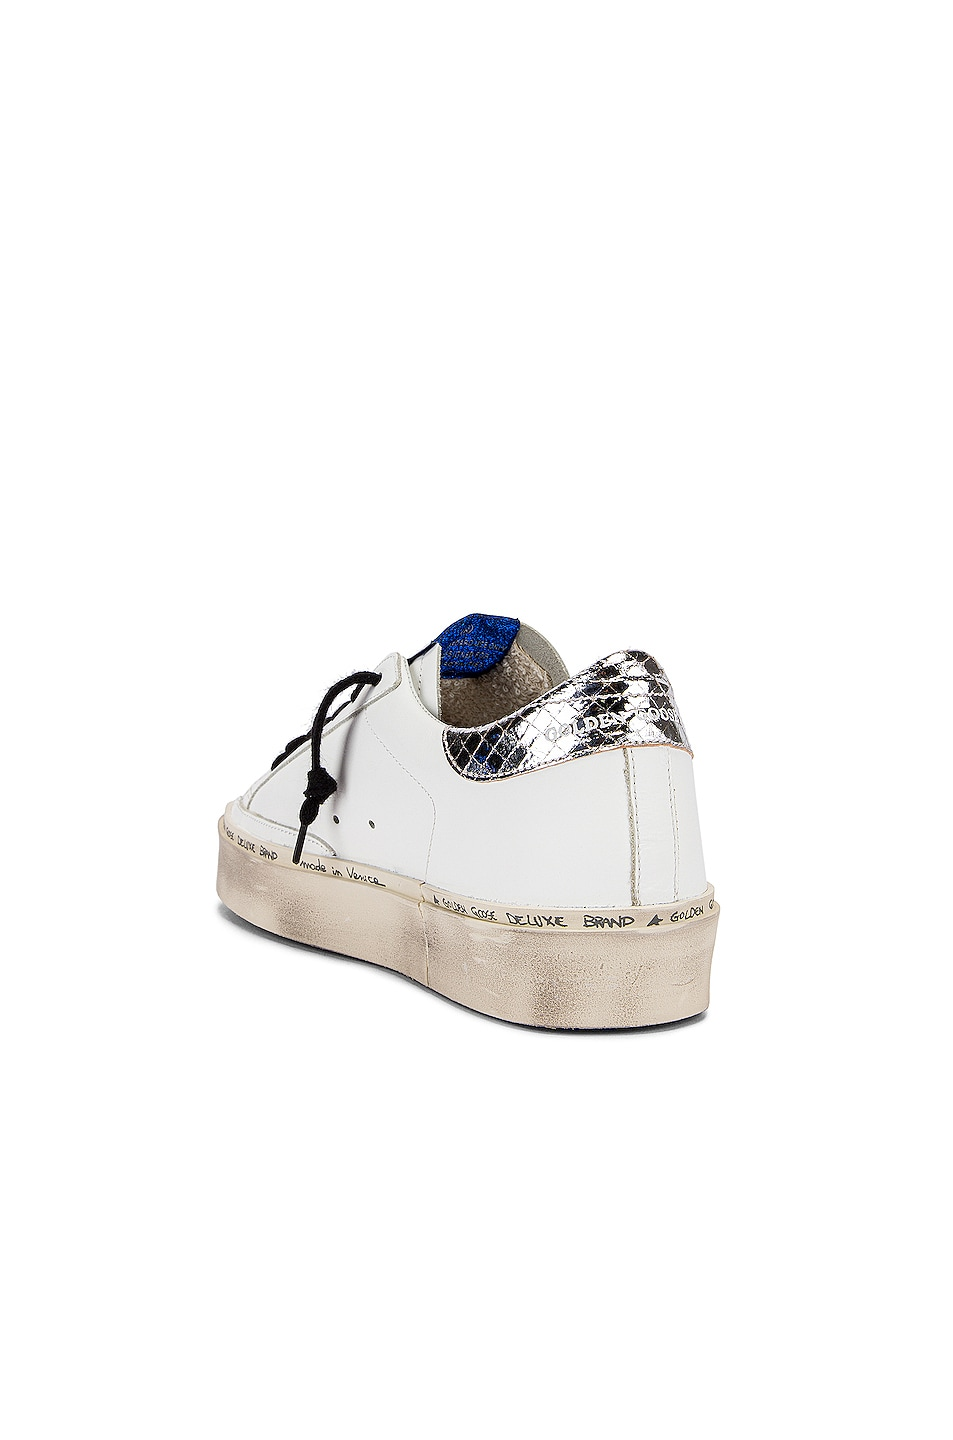 Image 3 of Golden Goose Hi Star Sneaker in White & Natural Snake